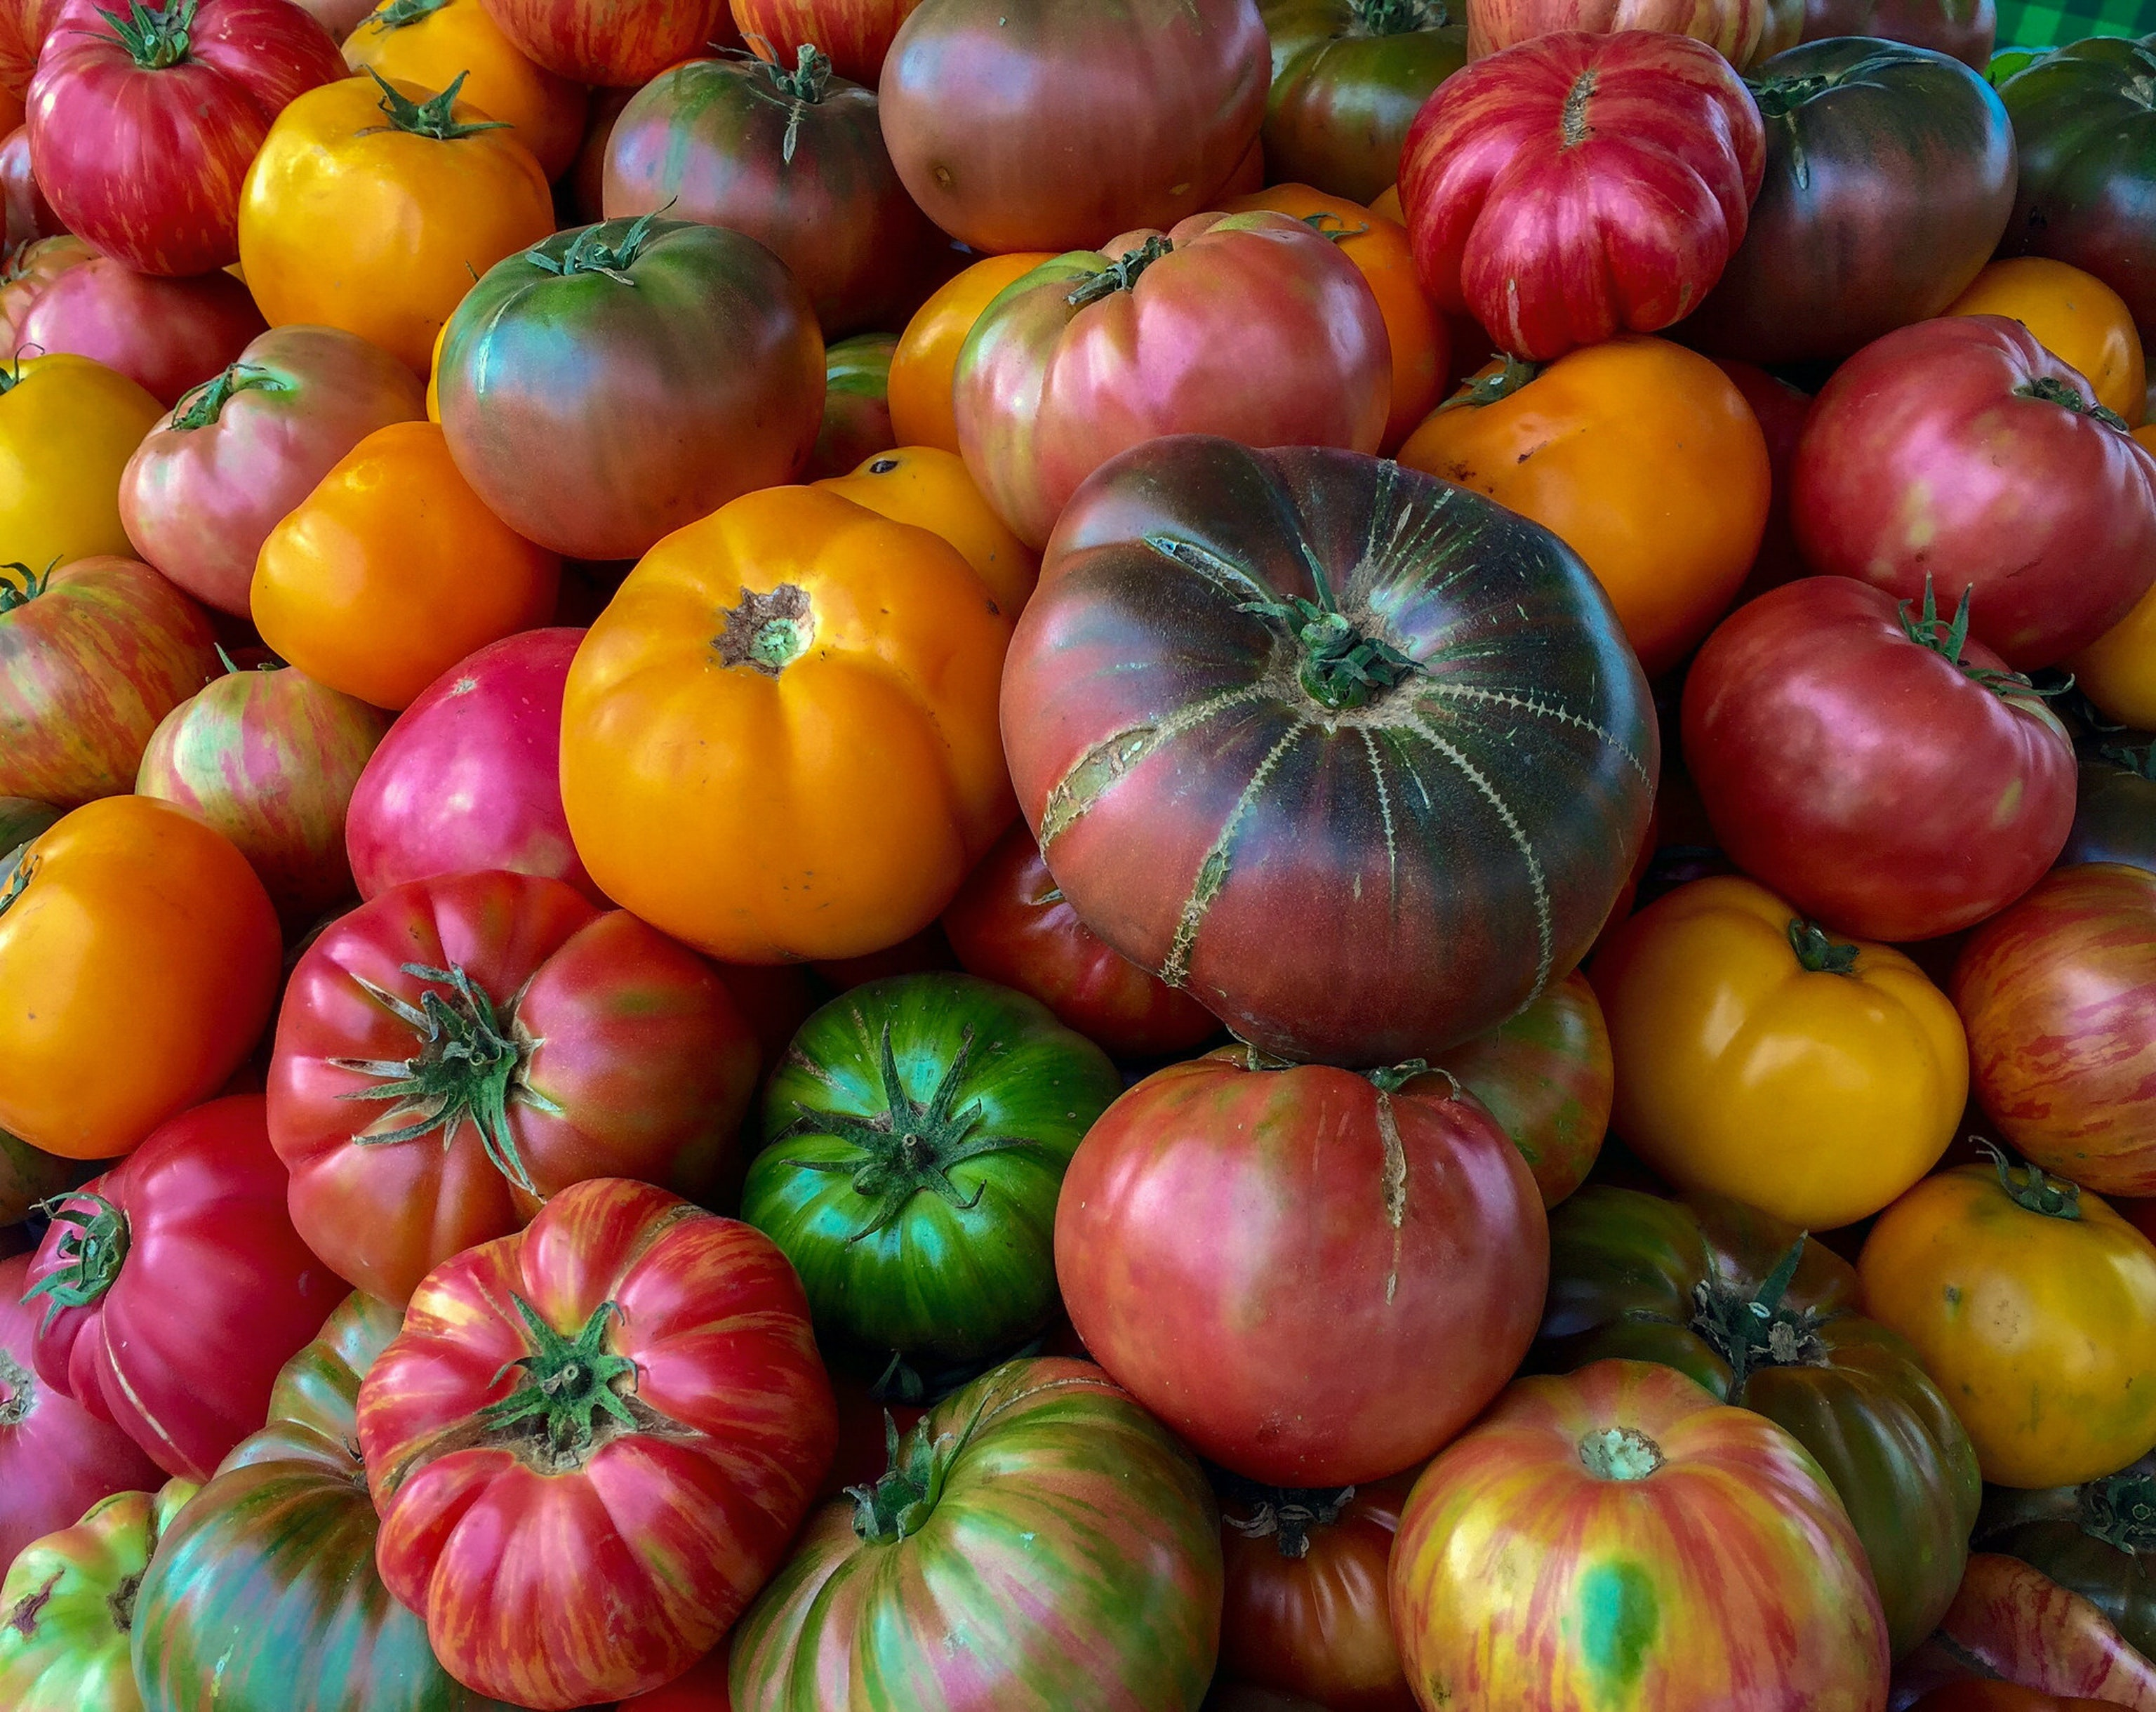 If you want these glorious organic heirlooms to keep their vibrant off-the-vine flavor, keep them out of the cold.